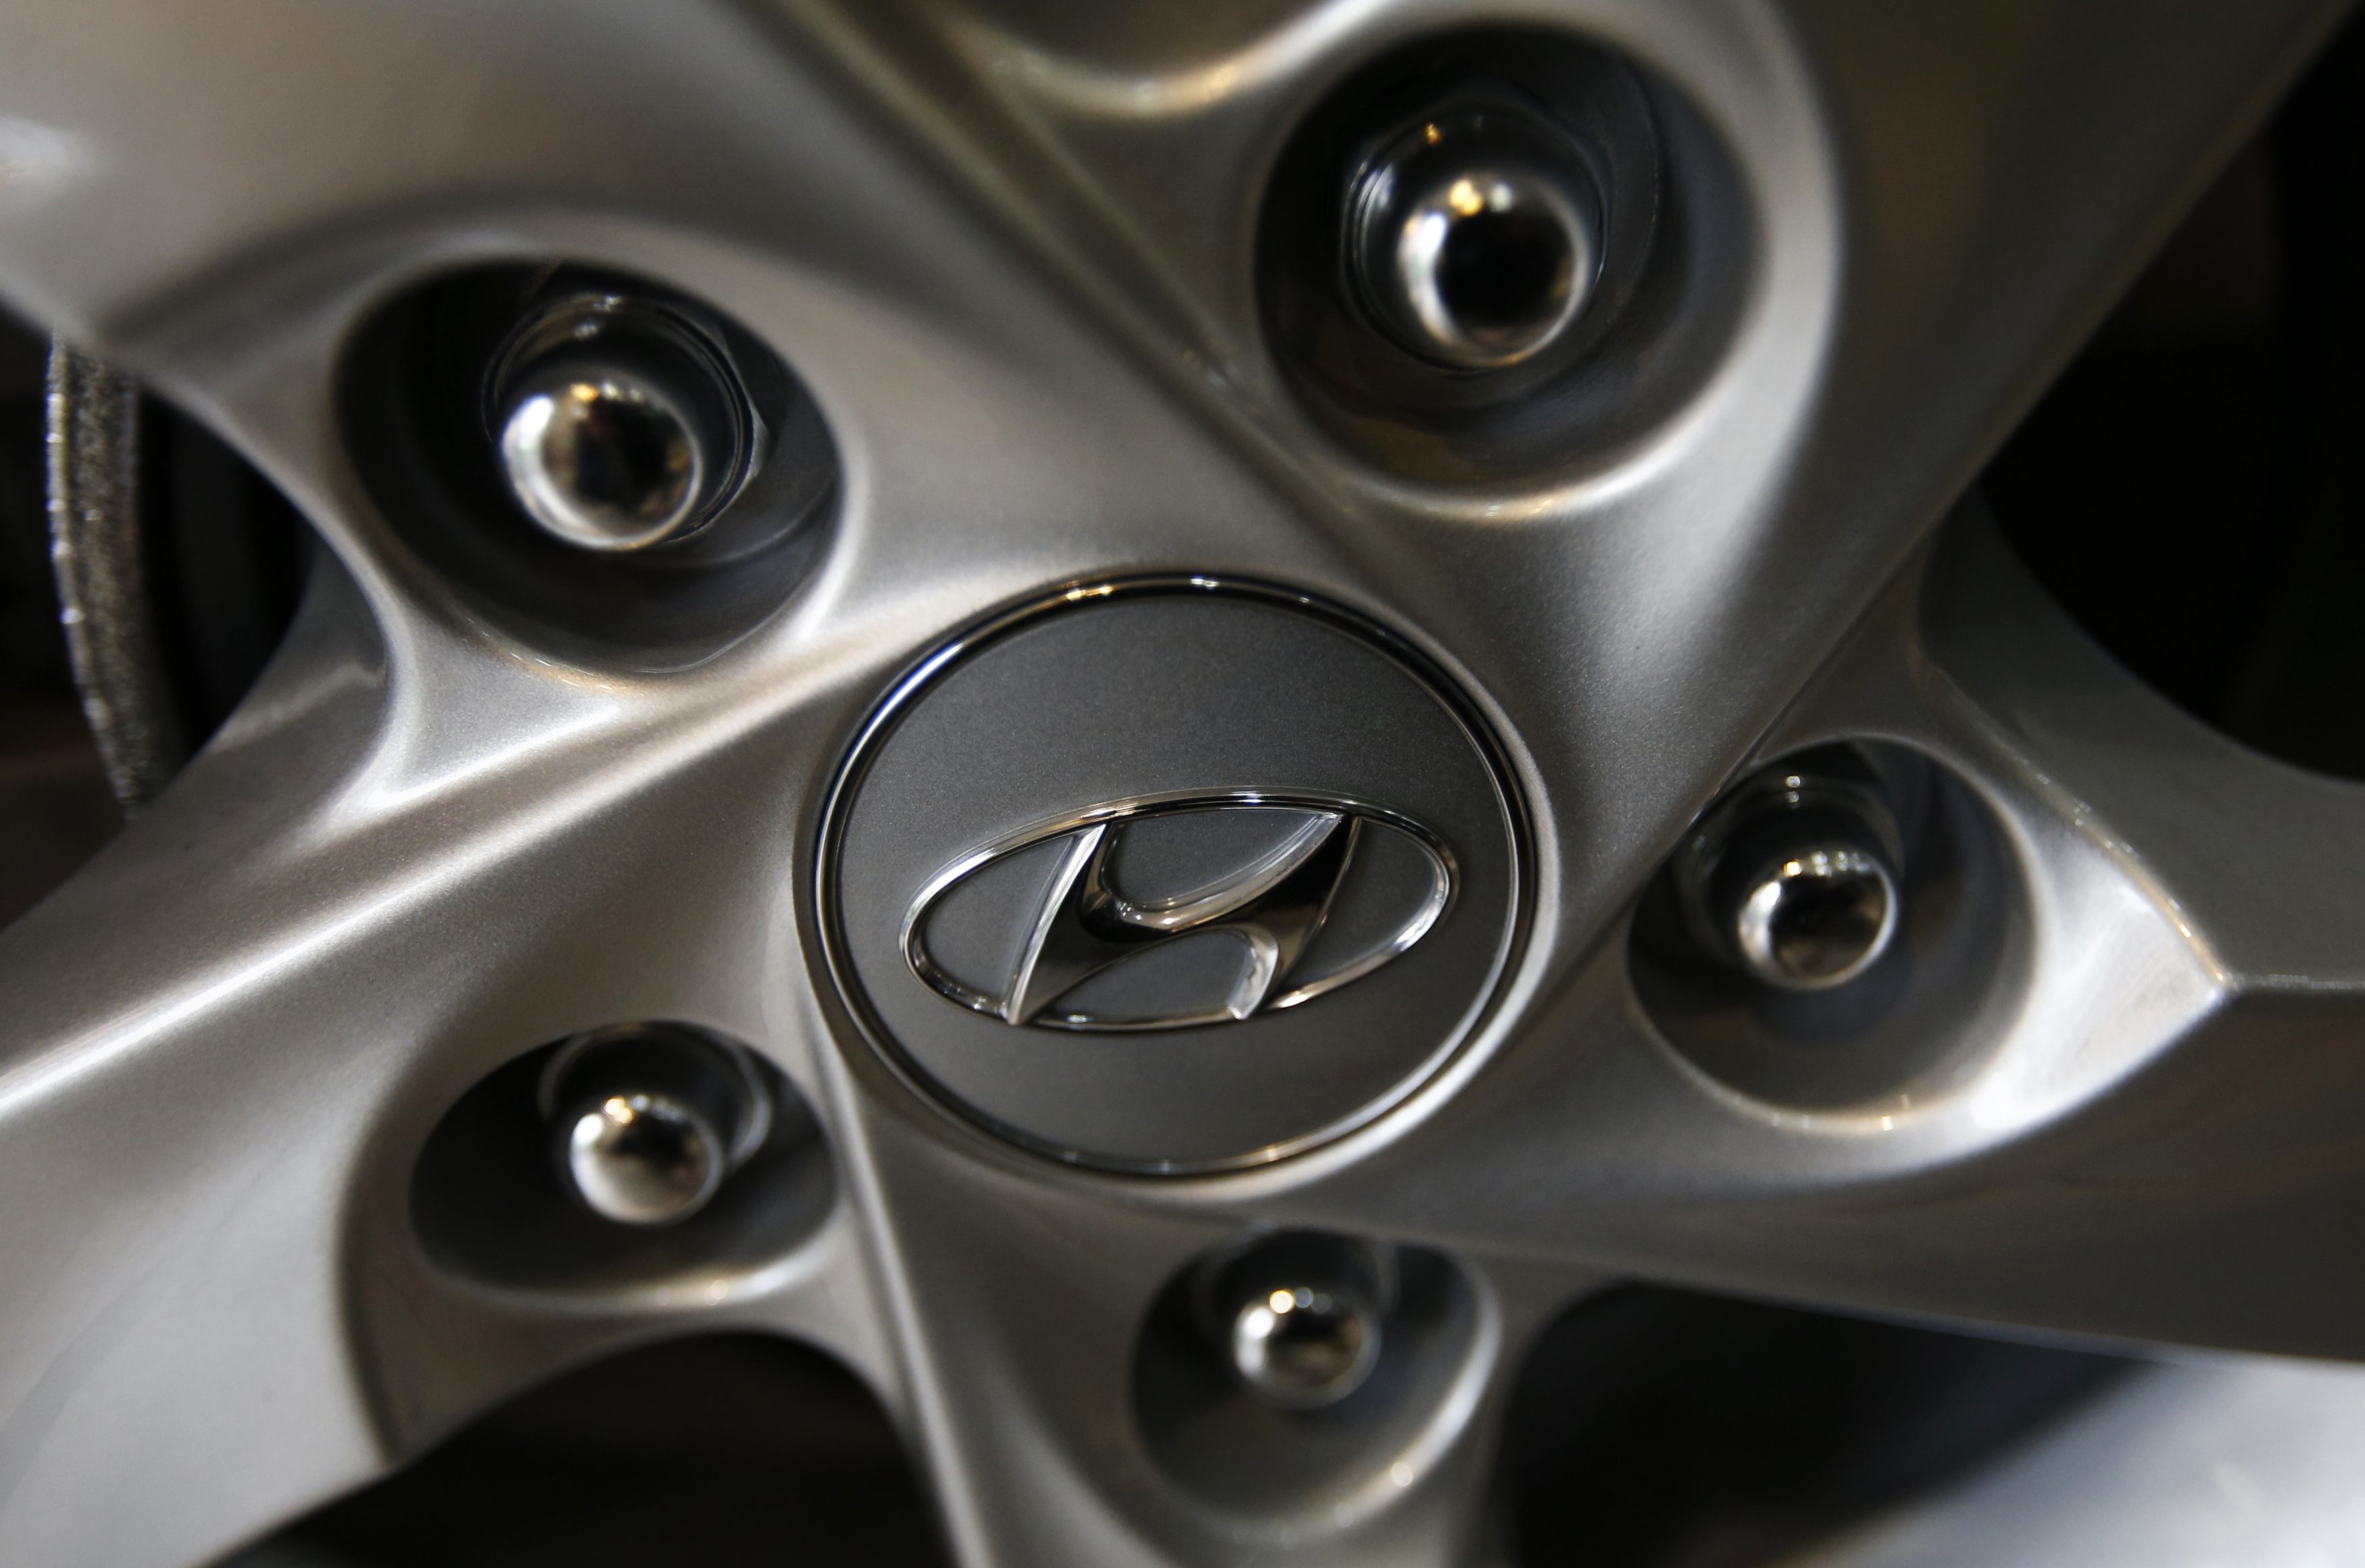 Hyundai kia motor finance company retail - Hyundai Sales Have Taken Off In Mexico A Year After Entering The Market